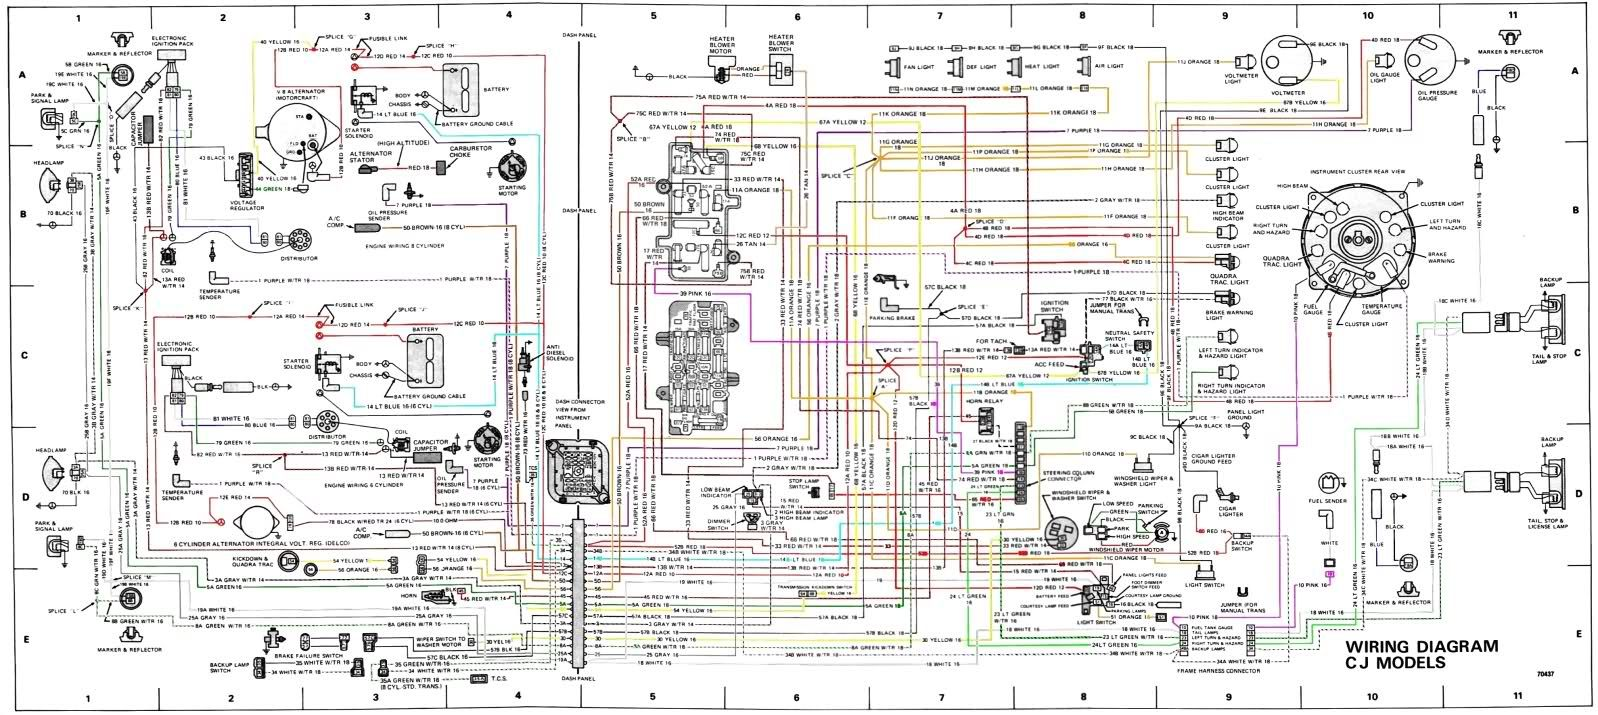 [SCHEMATICS_4LK]  1985 Cj7 Fuse Diagram - Cadillac Cts Rear Fuse Box for Wiring Diagram  Schematics | 1986 Jeep Cj Wiring Diagram |  | Wiring Diagram Schematics